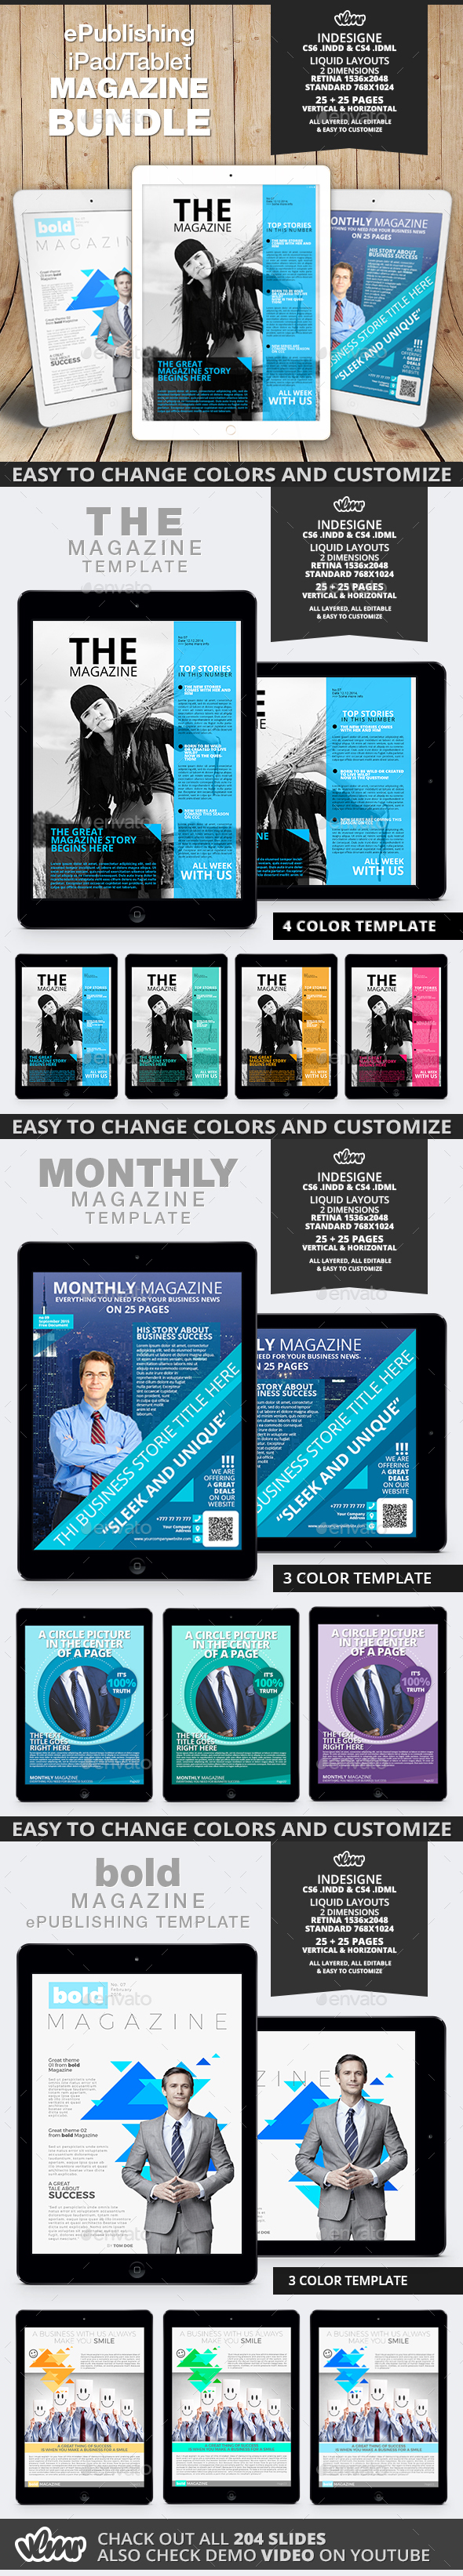 ePublishing iPad / Tablet Magazine Bundle - Digital Magazines ePublishing